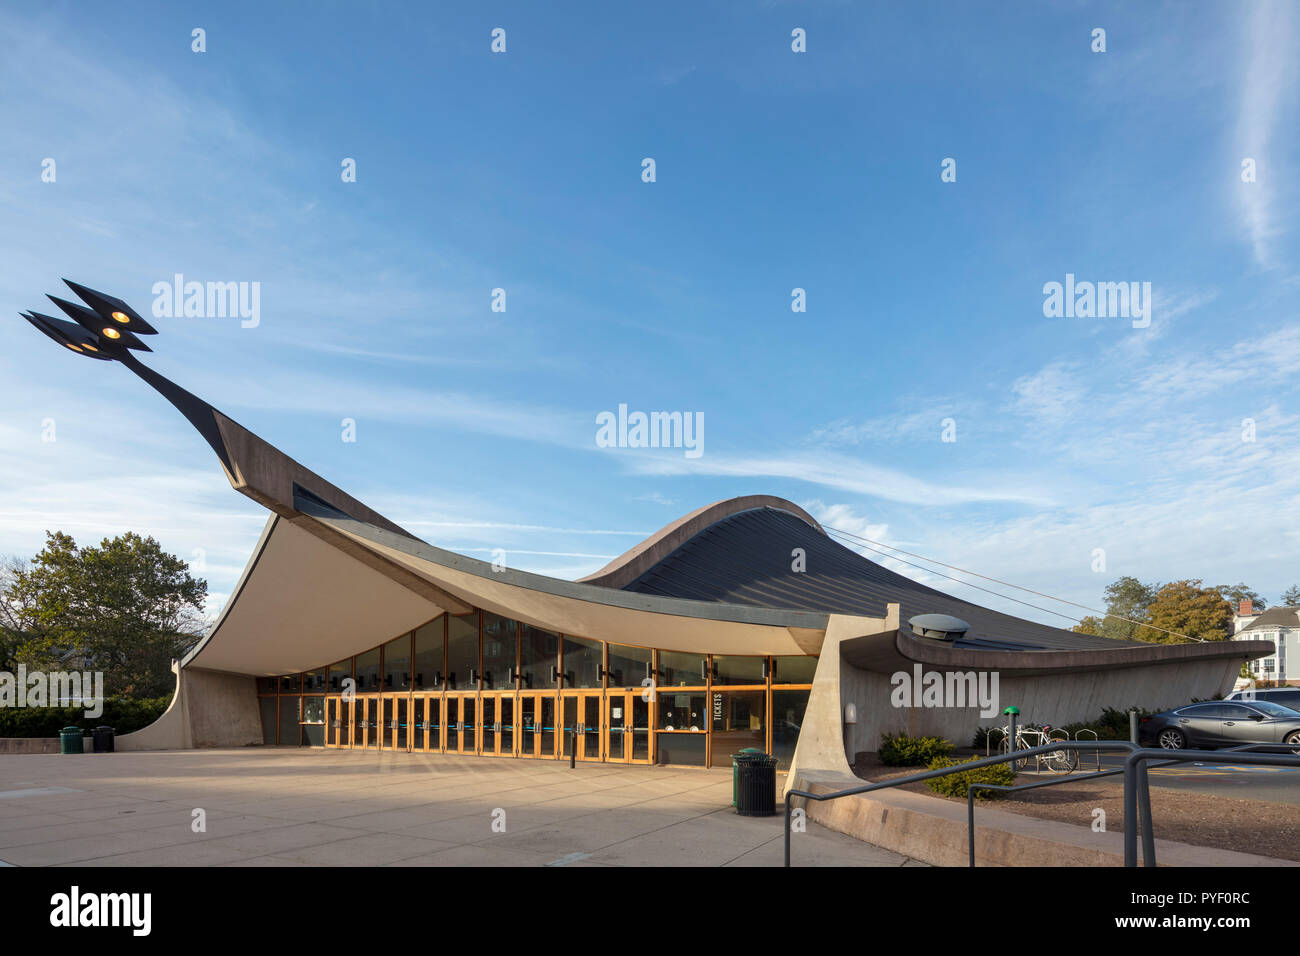 David S. Ingalls hockey rink for Yale University, New Haven,Connecticut, USA, designed by architect Eero Saarinen, built between 1953 and 1958. - Stock Image